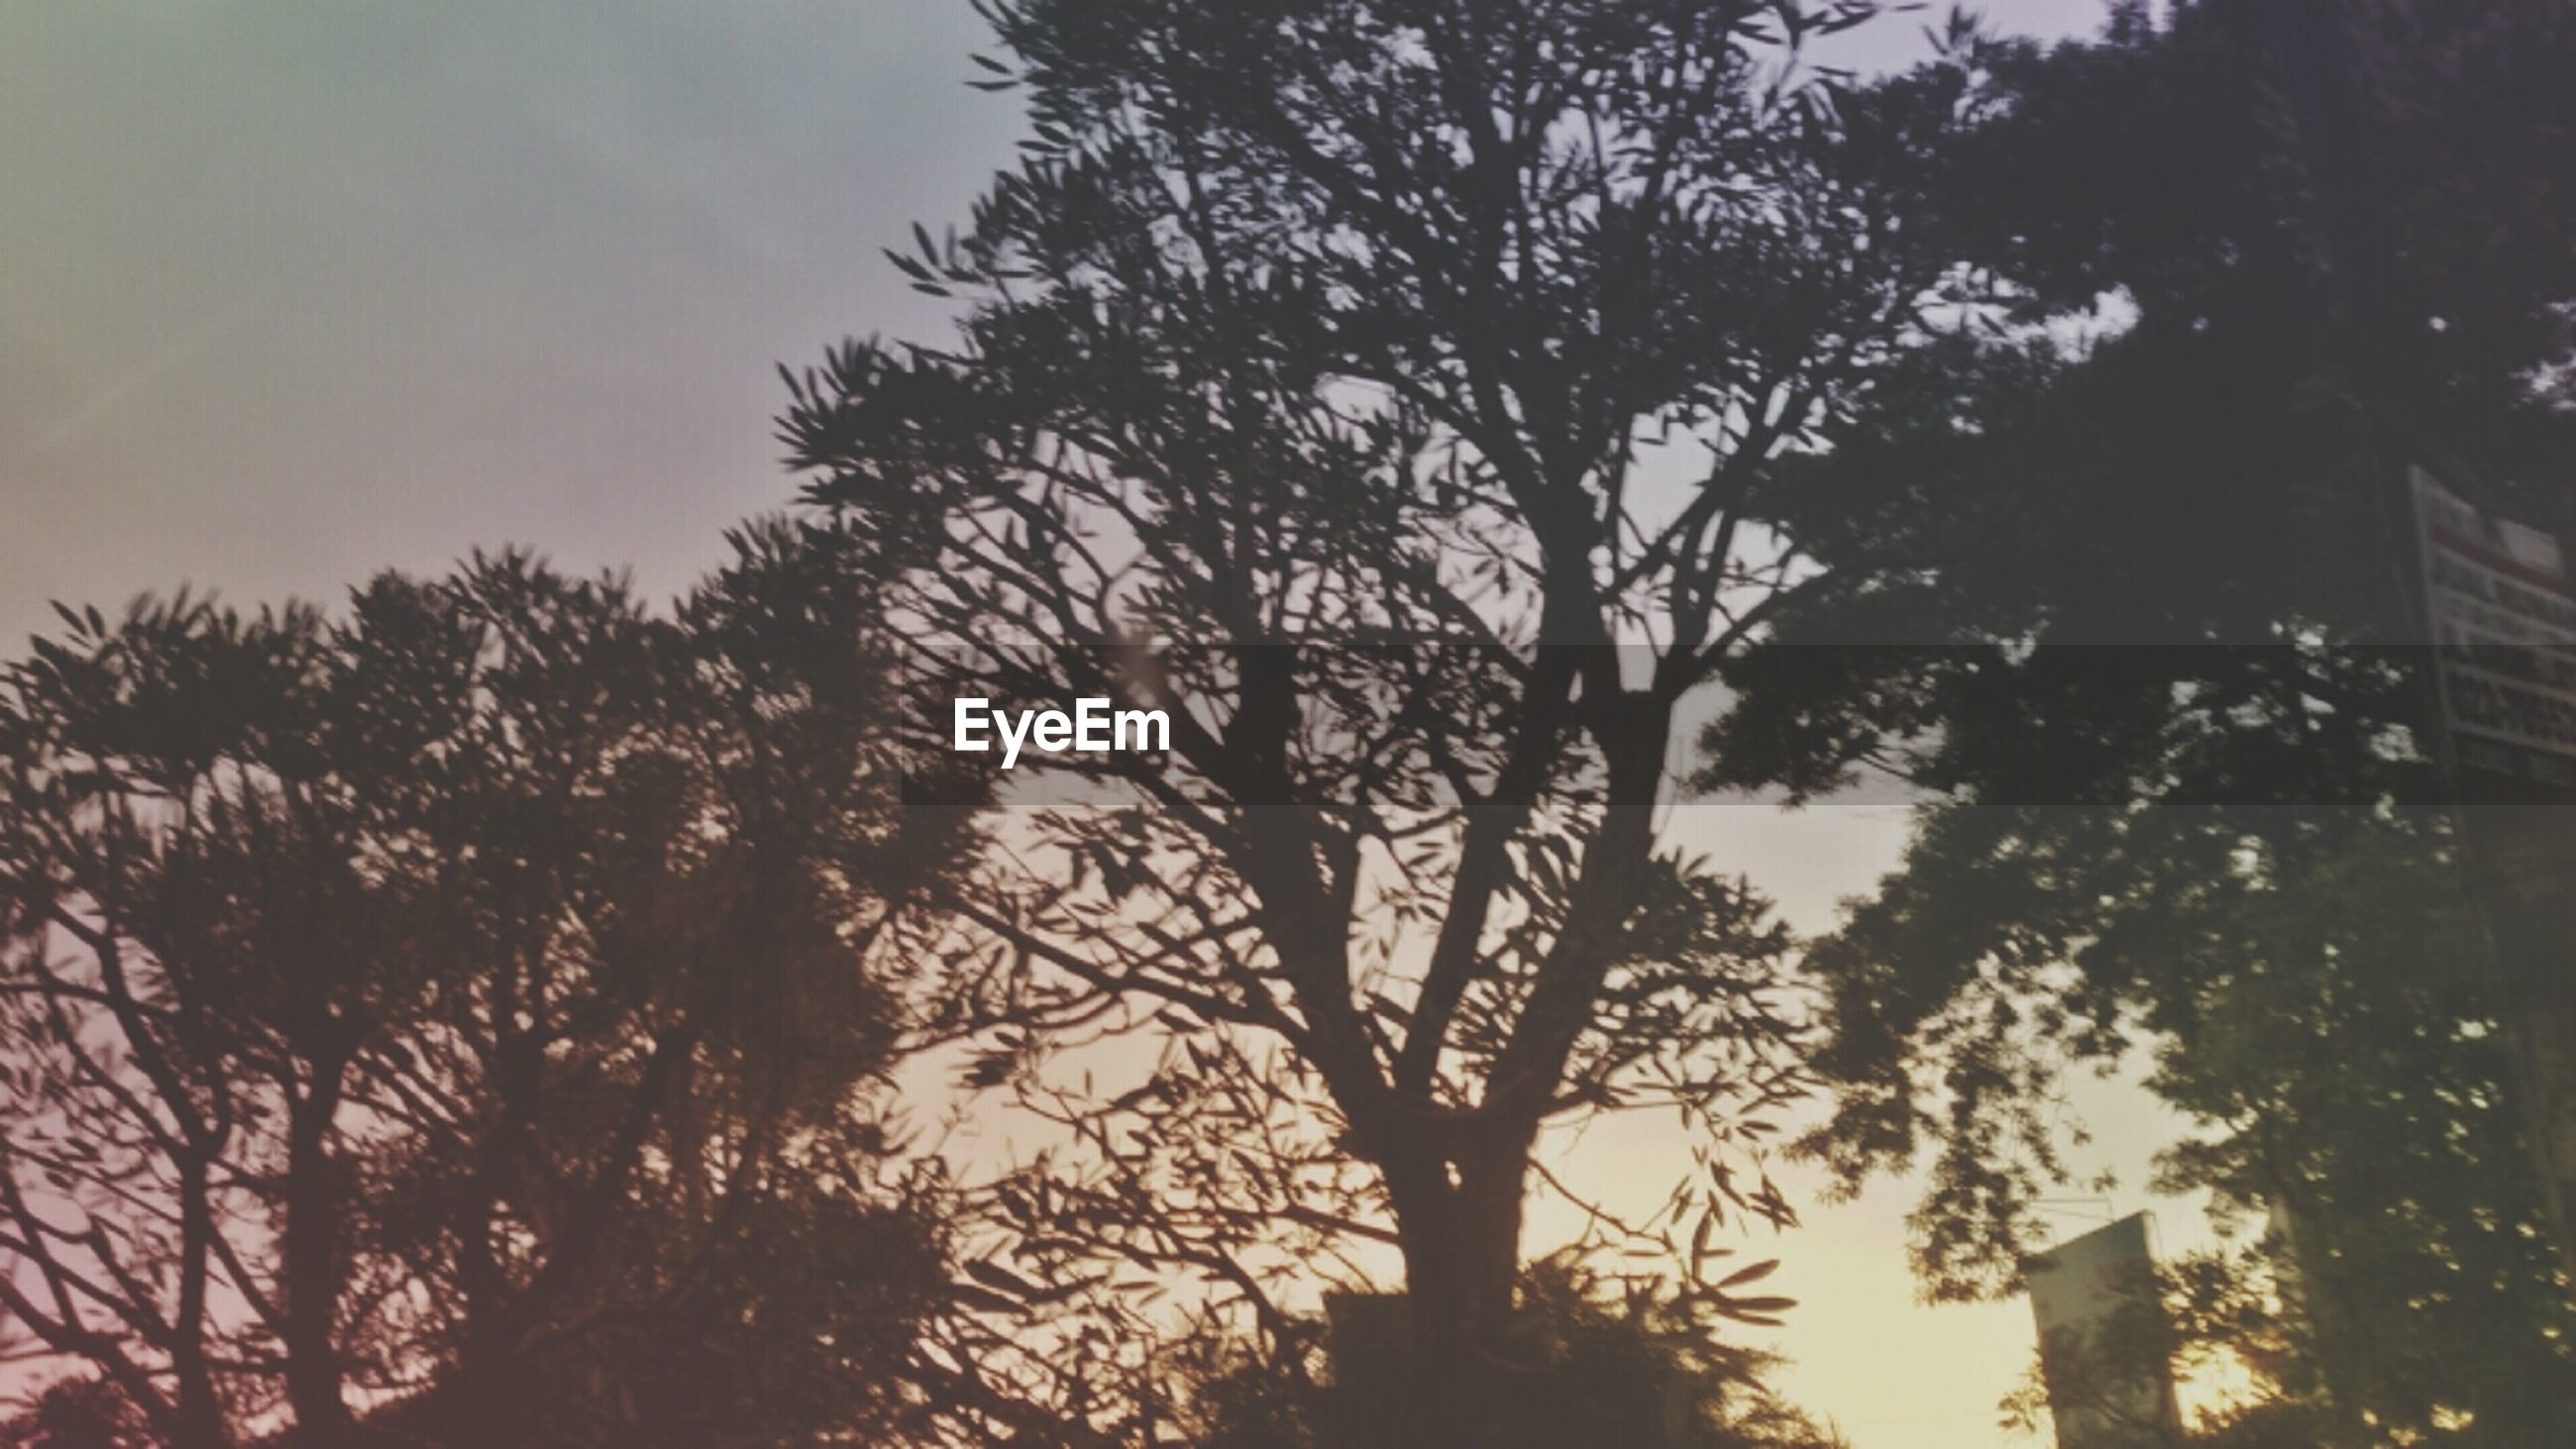 tree, silhouette, sunset, low angle view, tranquility, branch, sky, growth, beauty in nature, nature, tranquil scene, scenics, tree trunk, outdoors, no people, idyllic, bare tree, dusk, sunlight, forest